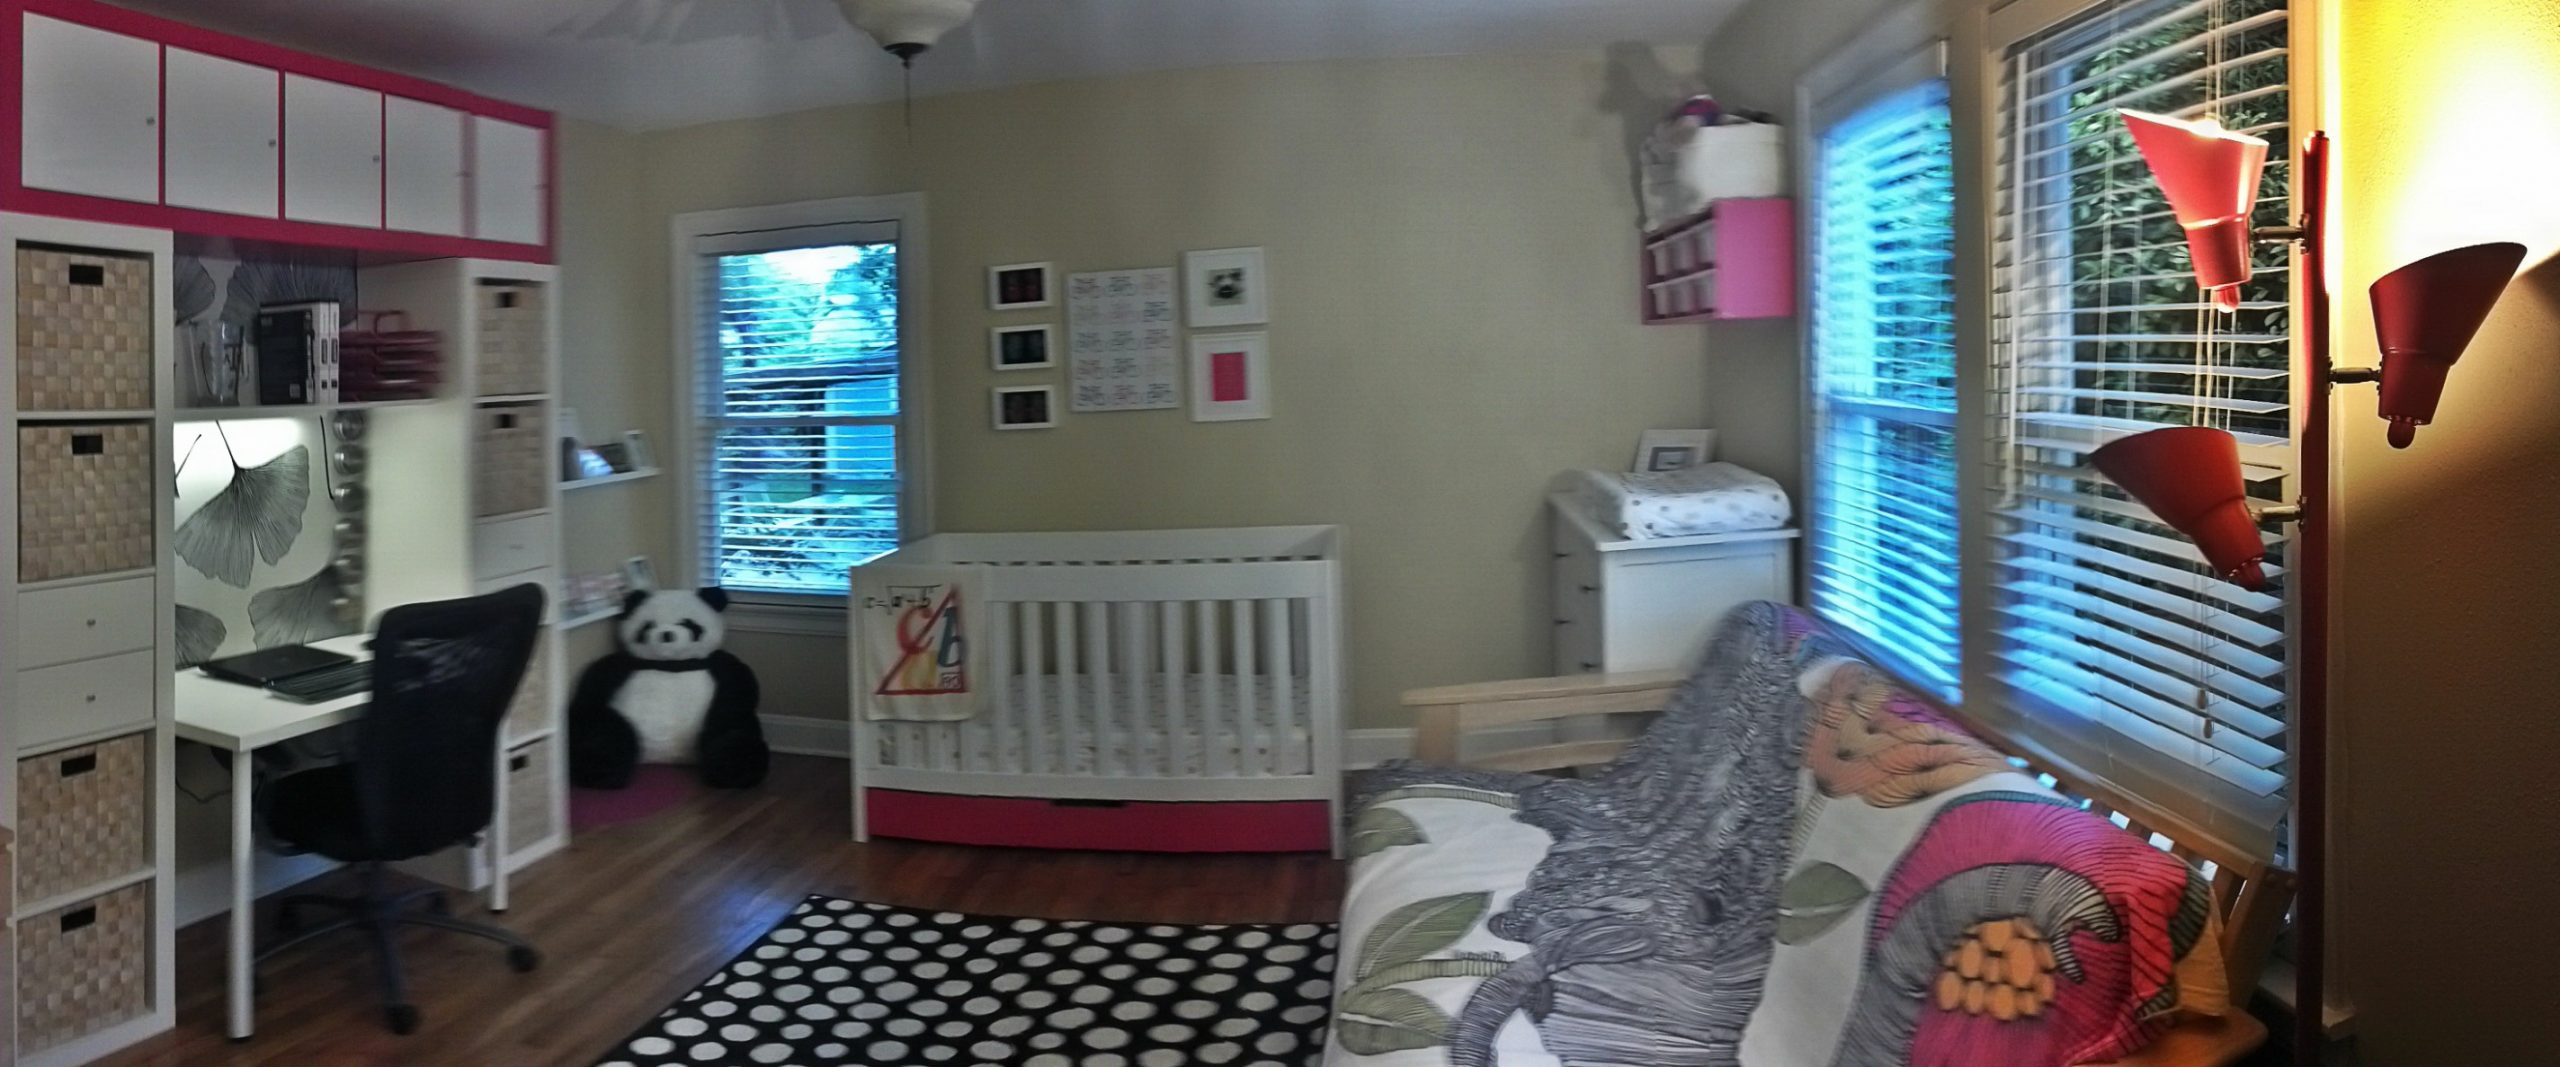 Nursery for Baby & Office for Mom  Modern Life in a Vintage Bungalow - Baby Room And Office